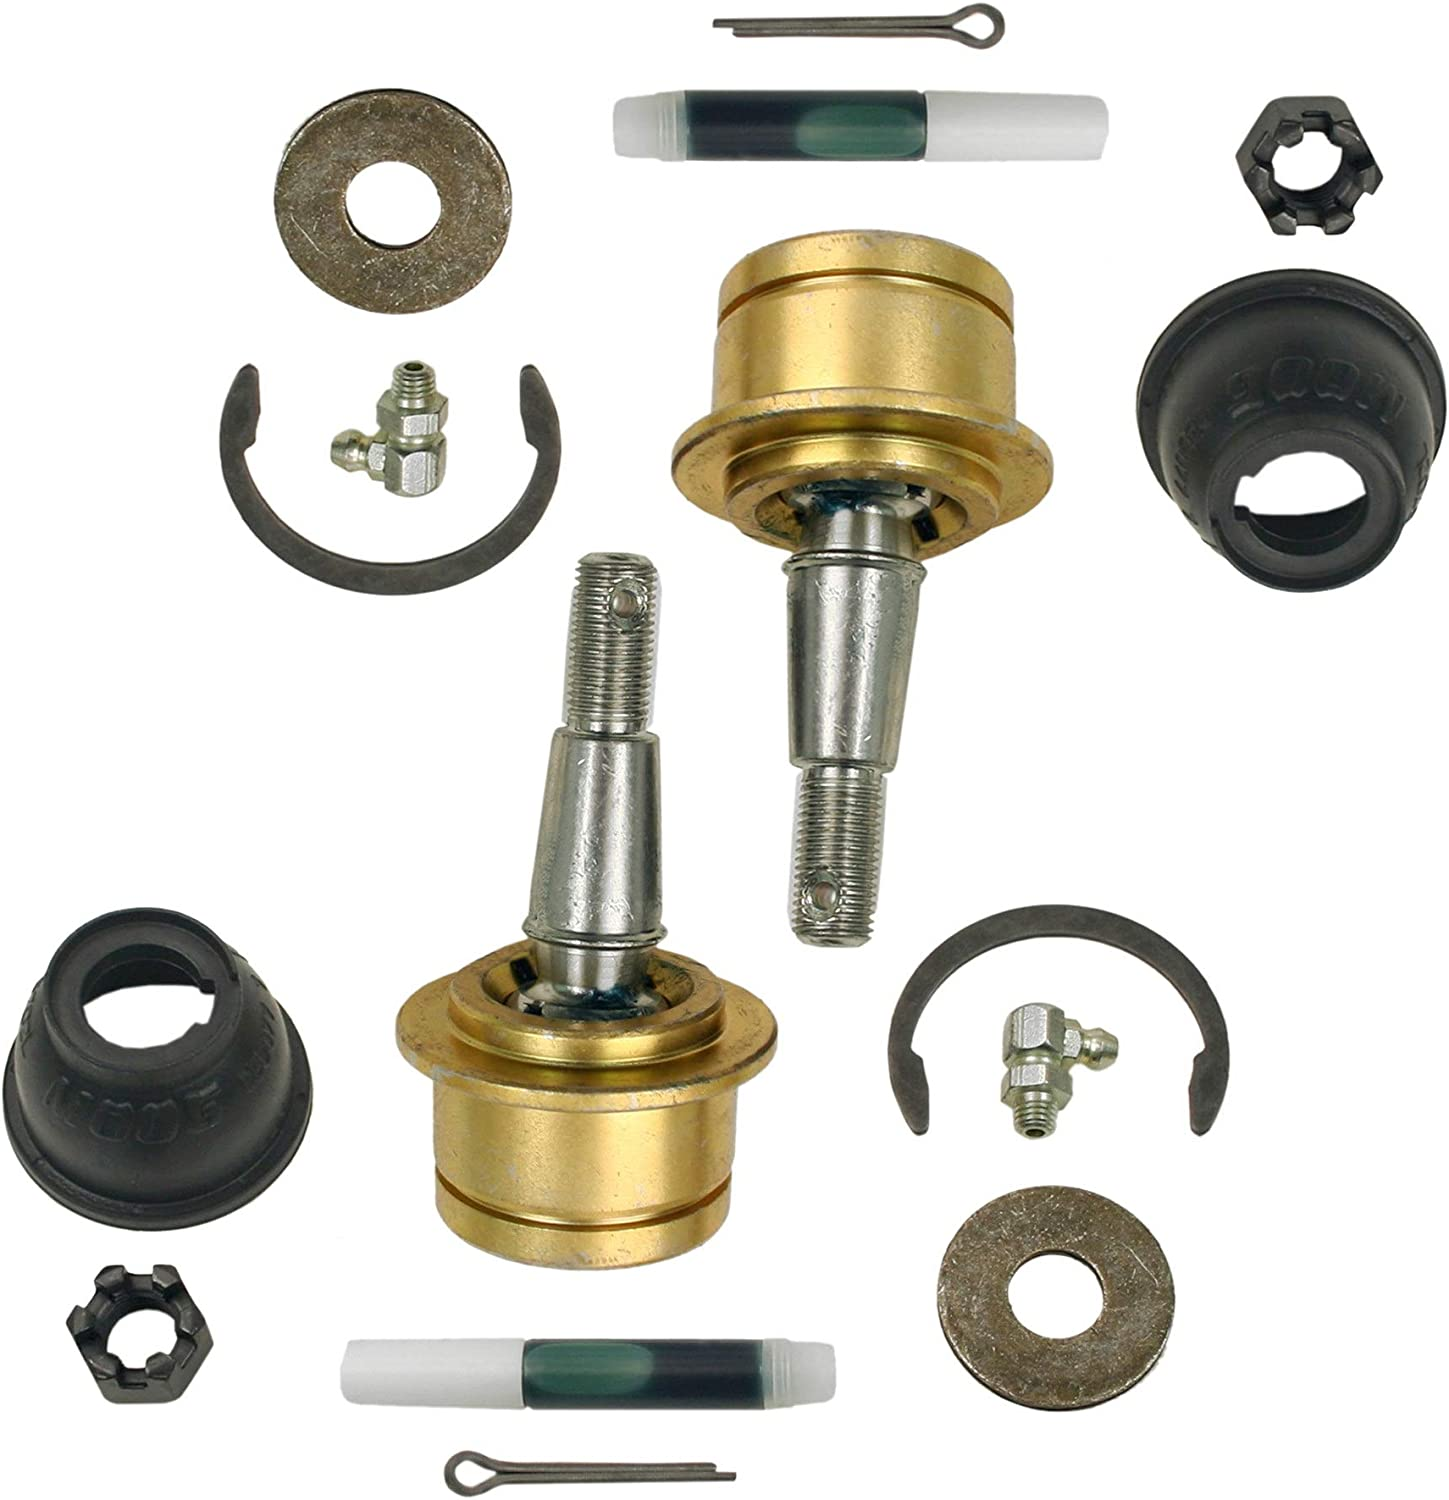 Pair Set Of 2 Front Easy-to-use Be super welcome Lower Jeep For Cherok Suspension Ball Joints